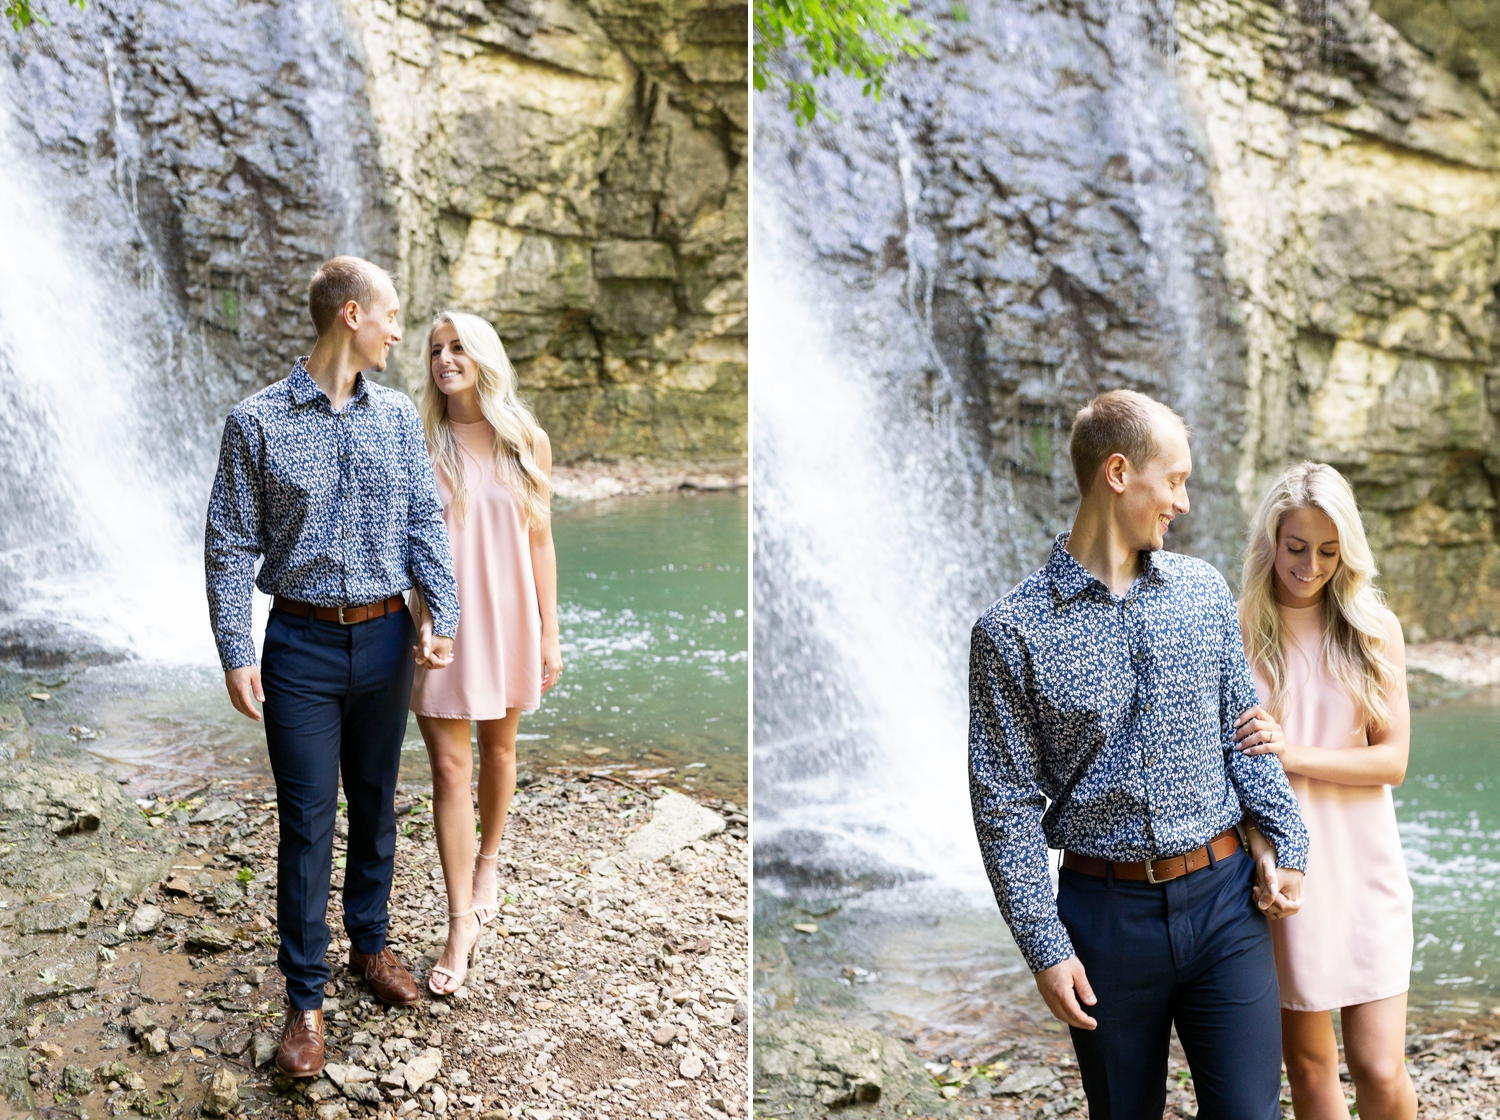 engagement ring, pink dress, preppy outfit ideas, Creek engagement photos, Ohio engagement photos, Dublin Ohio, Dublin engagement session, Columbus engagement session, Columbus engagement photos, outdoor engagement photos, Ohio wedding photographer, Columbus wedding photographer, engagement photo ideas, summer engagement photos, engagement outfit ideas, engagement photos, outdoor engagement photos, candid photos, Wright State University, college sweethearts, adventure engagement photos